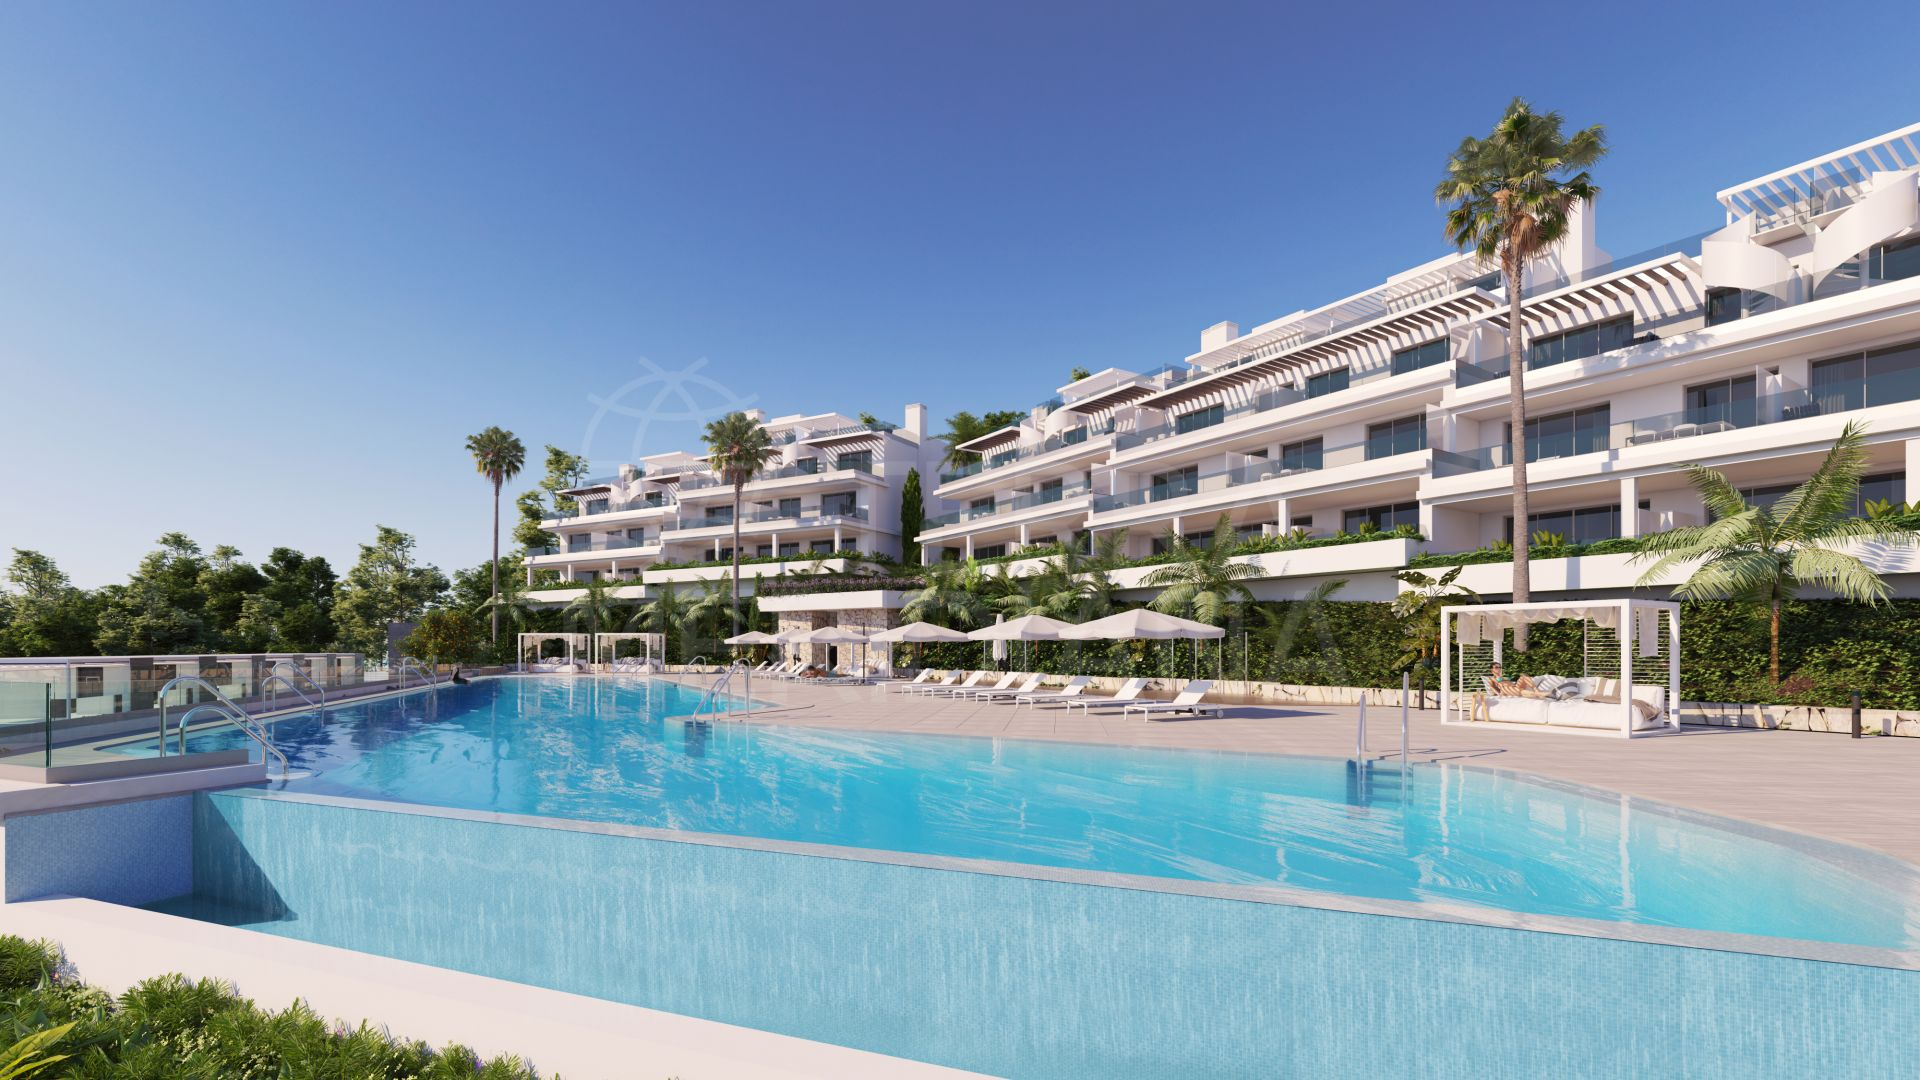 Contemporary off-plan penthouse with solarium in the luxury development of Oceana Views, Cancelada, New Golden Mile, Estepona